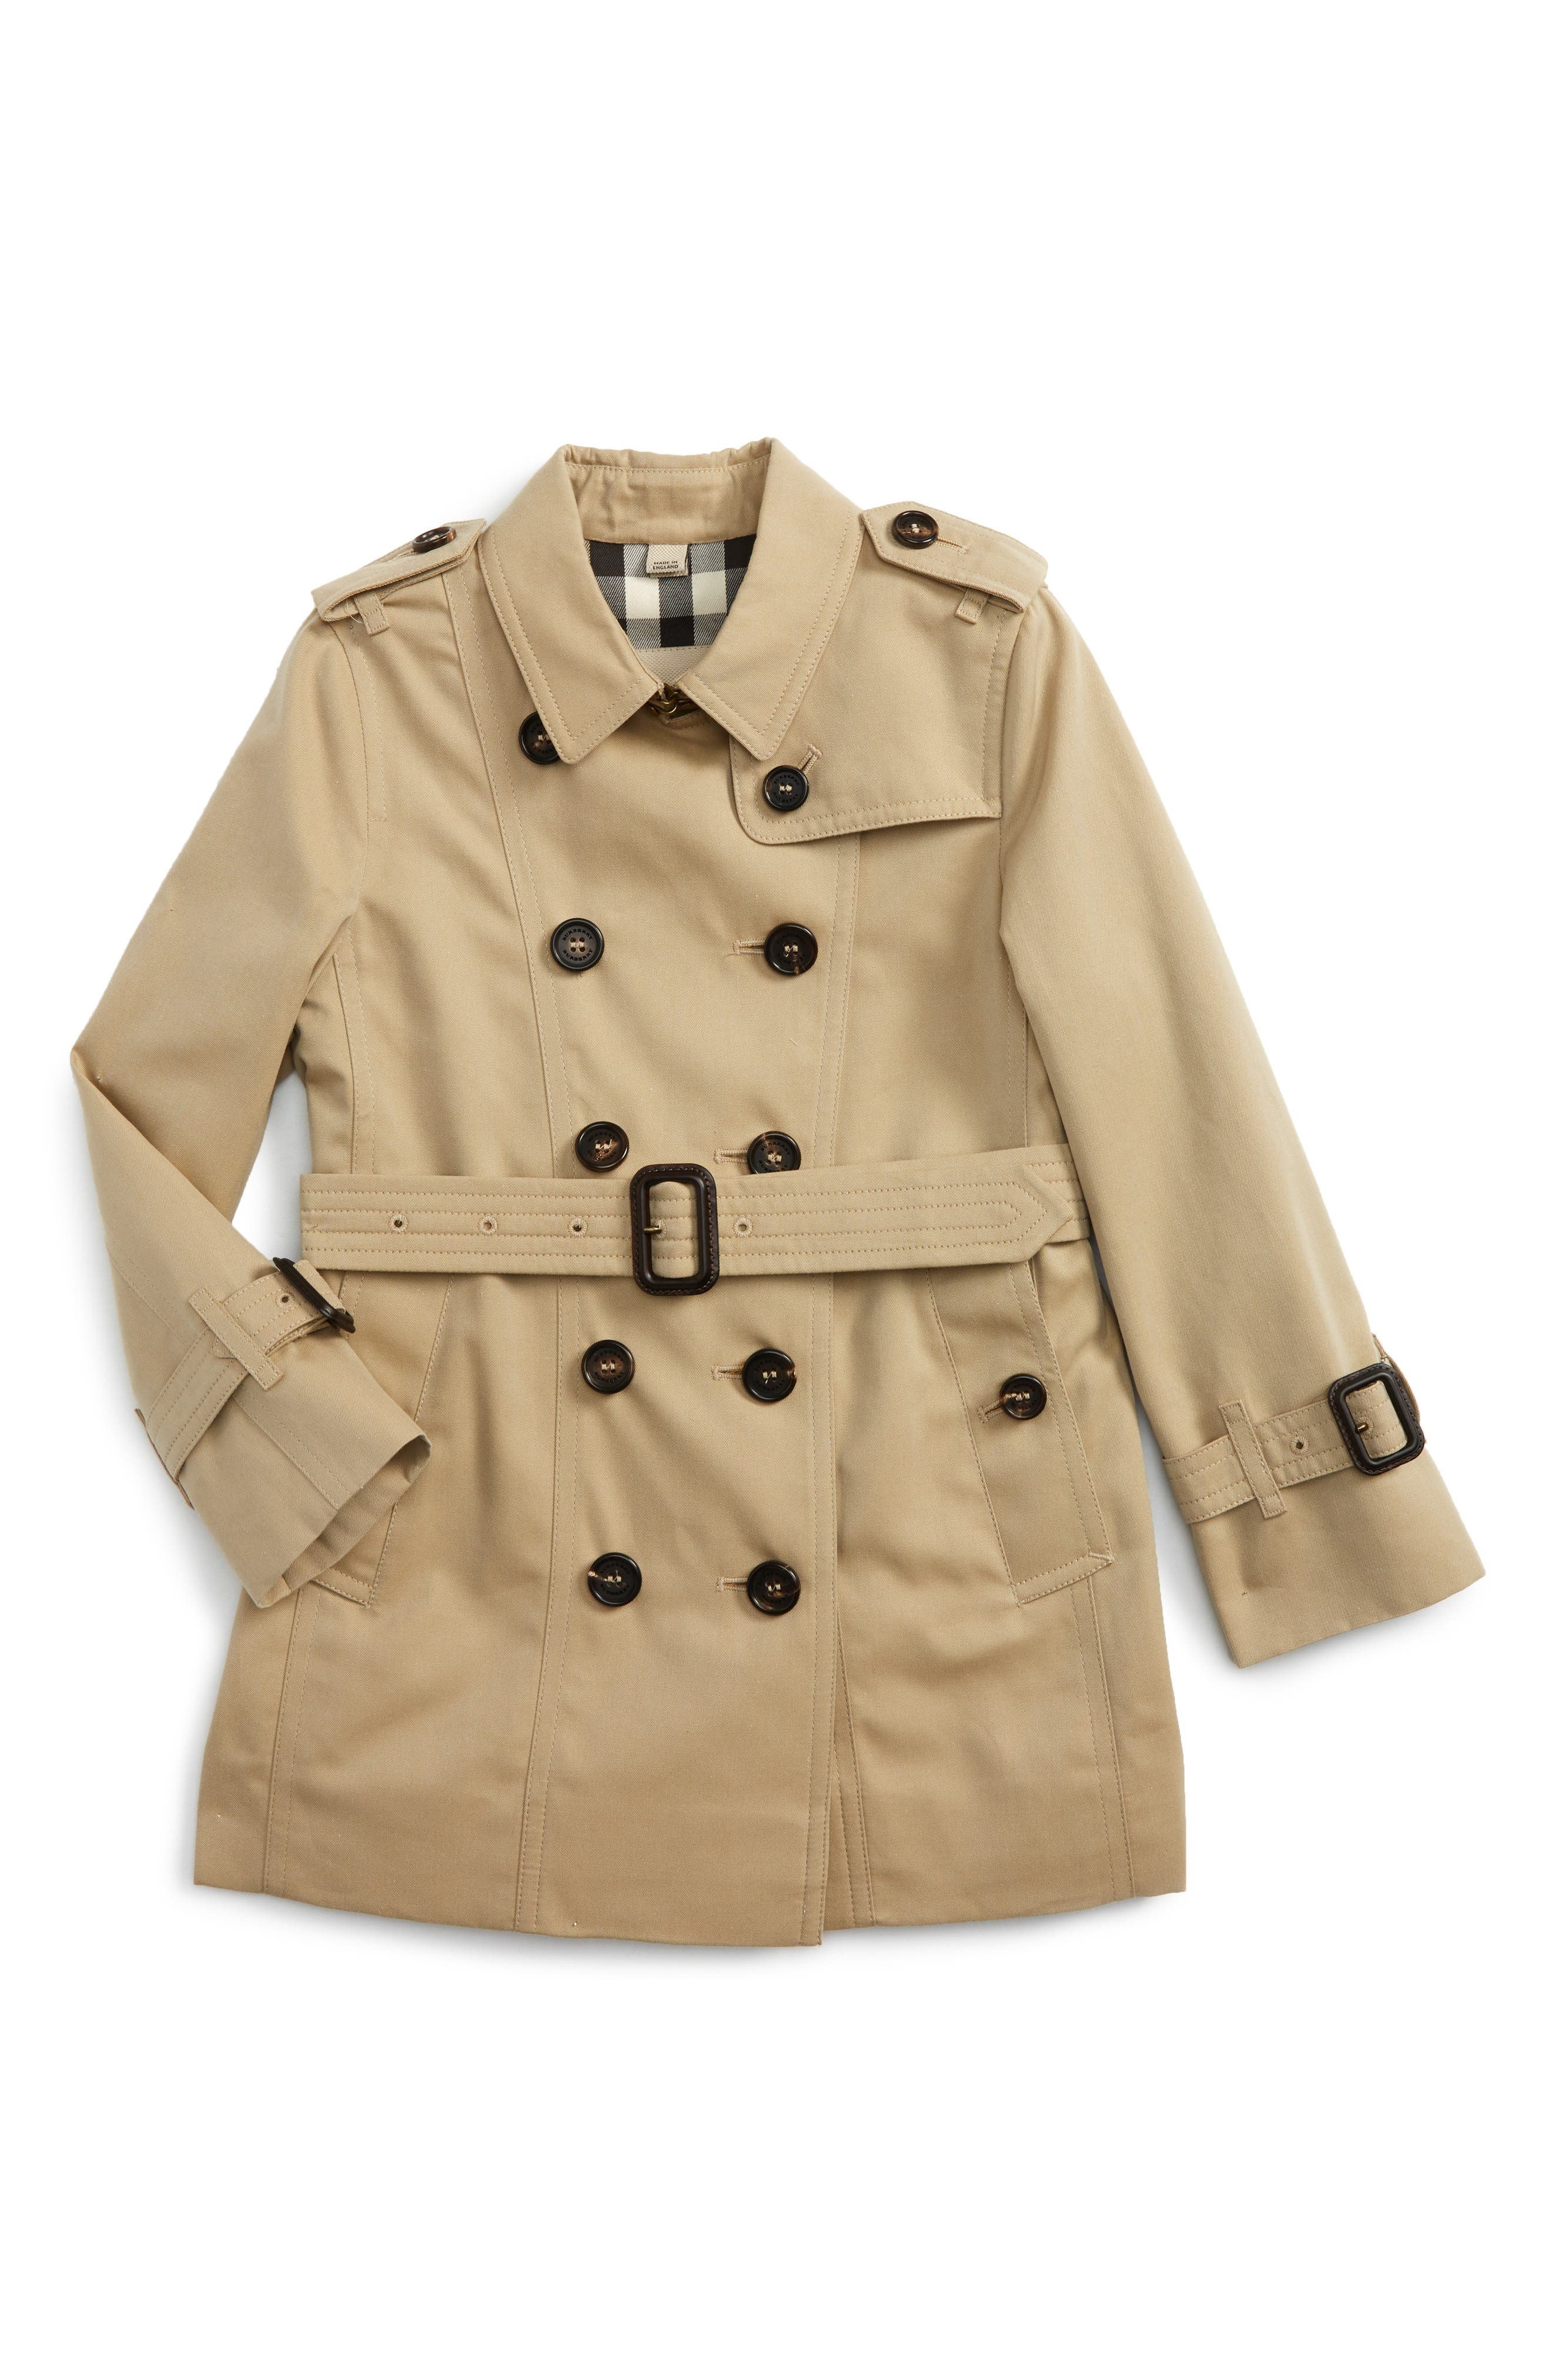 Main Image - Burberry Sandringham Double Breasted Trench Coat (Little Girls & Big Girls)